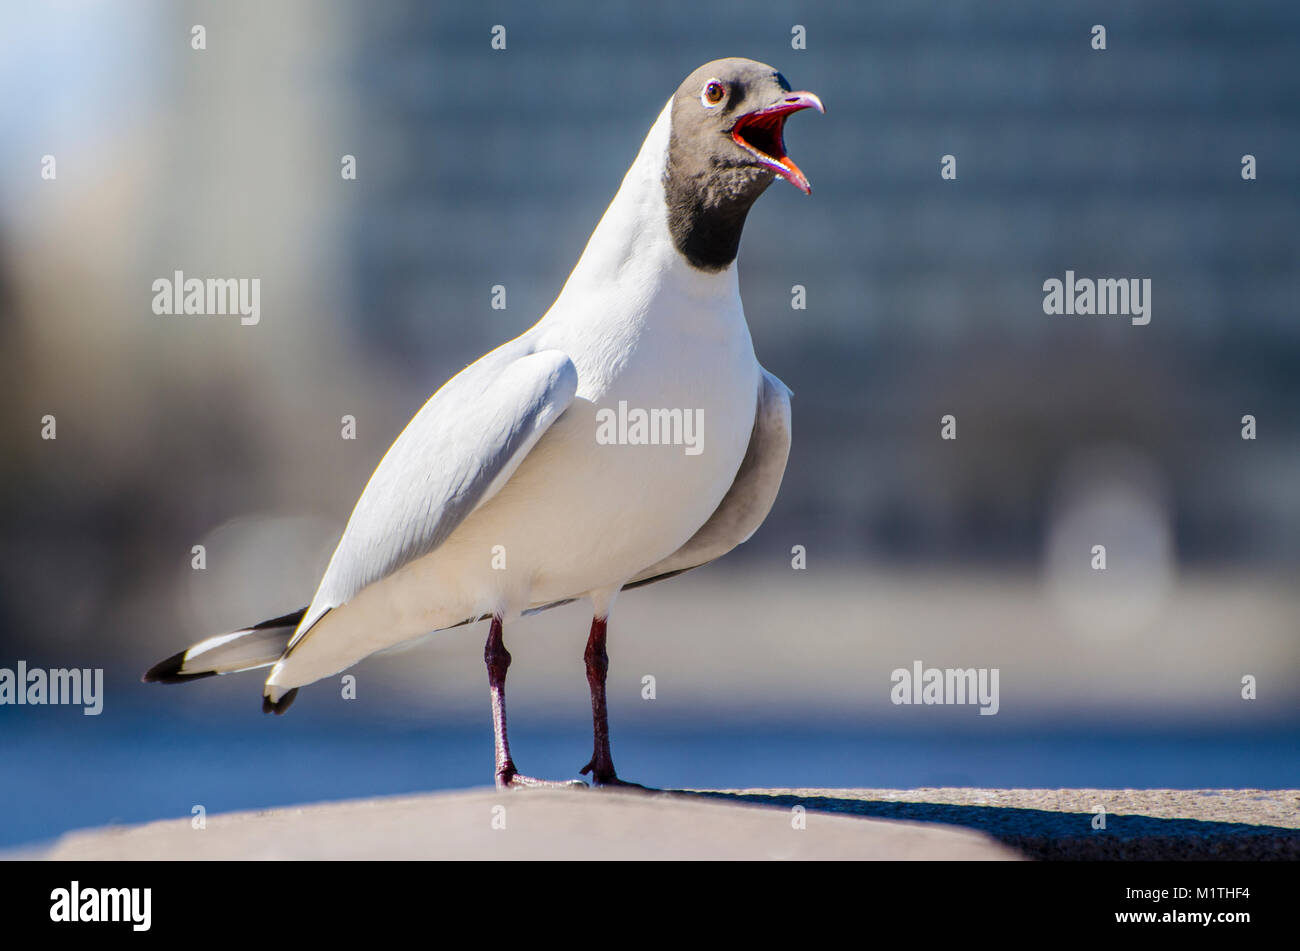 Macro shot of seagull standing on handrail with tousled feathers on windy winter day on cloudy and blue background. - Stock Image